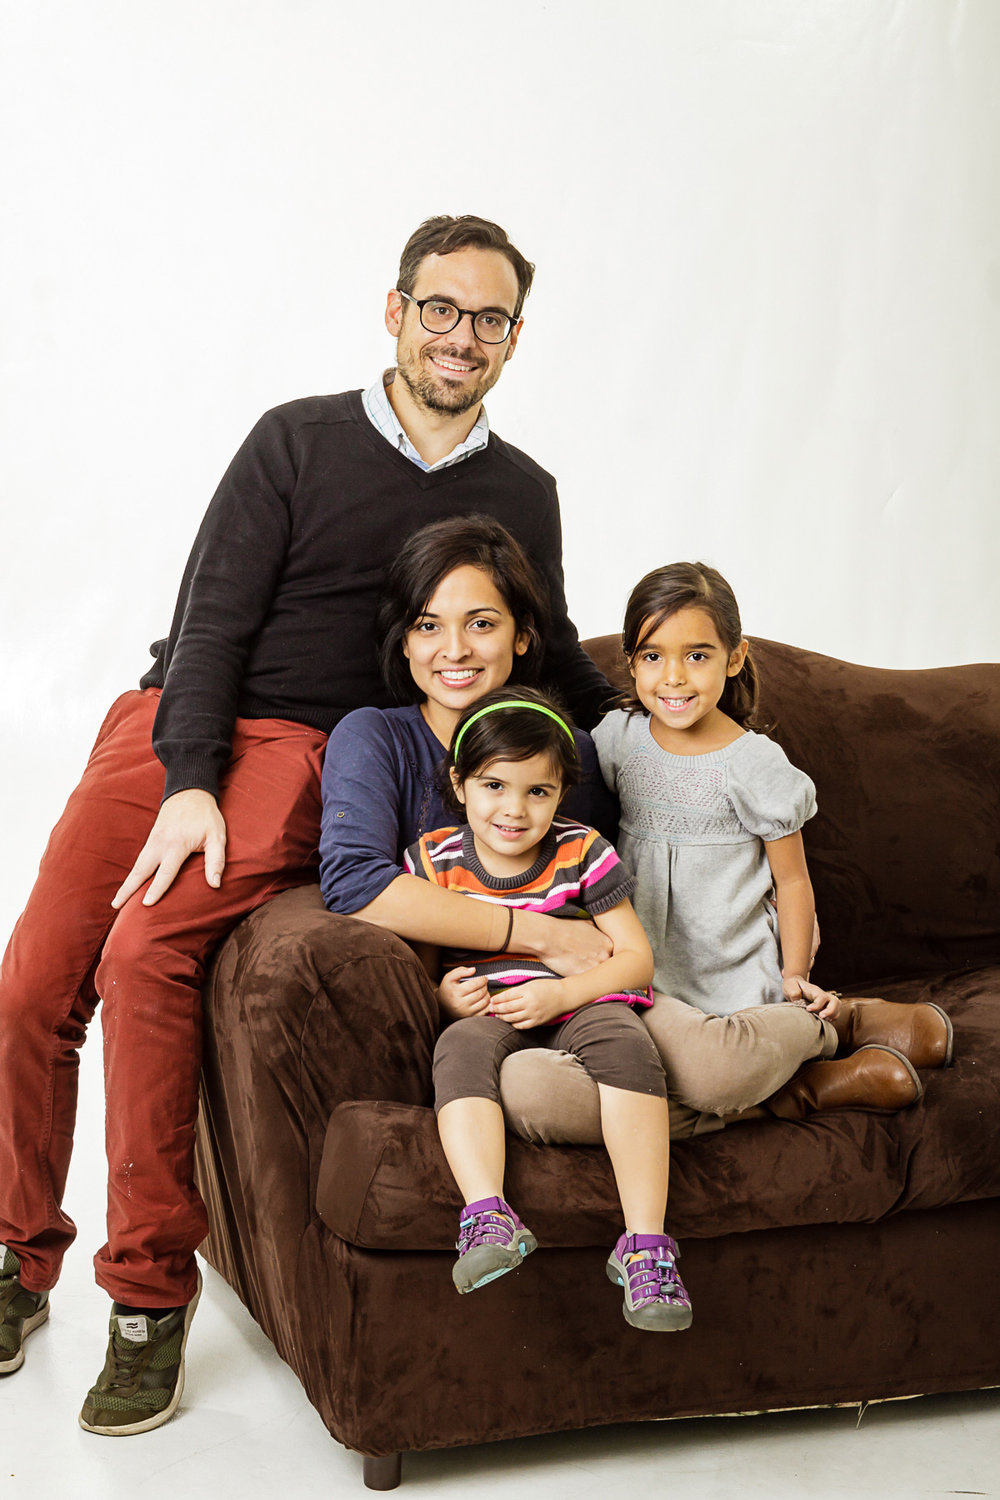 Casual Portrait of  family of  four on brown couch in the studio in Maywood